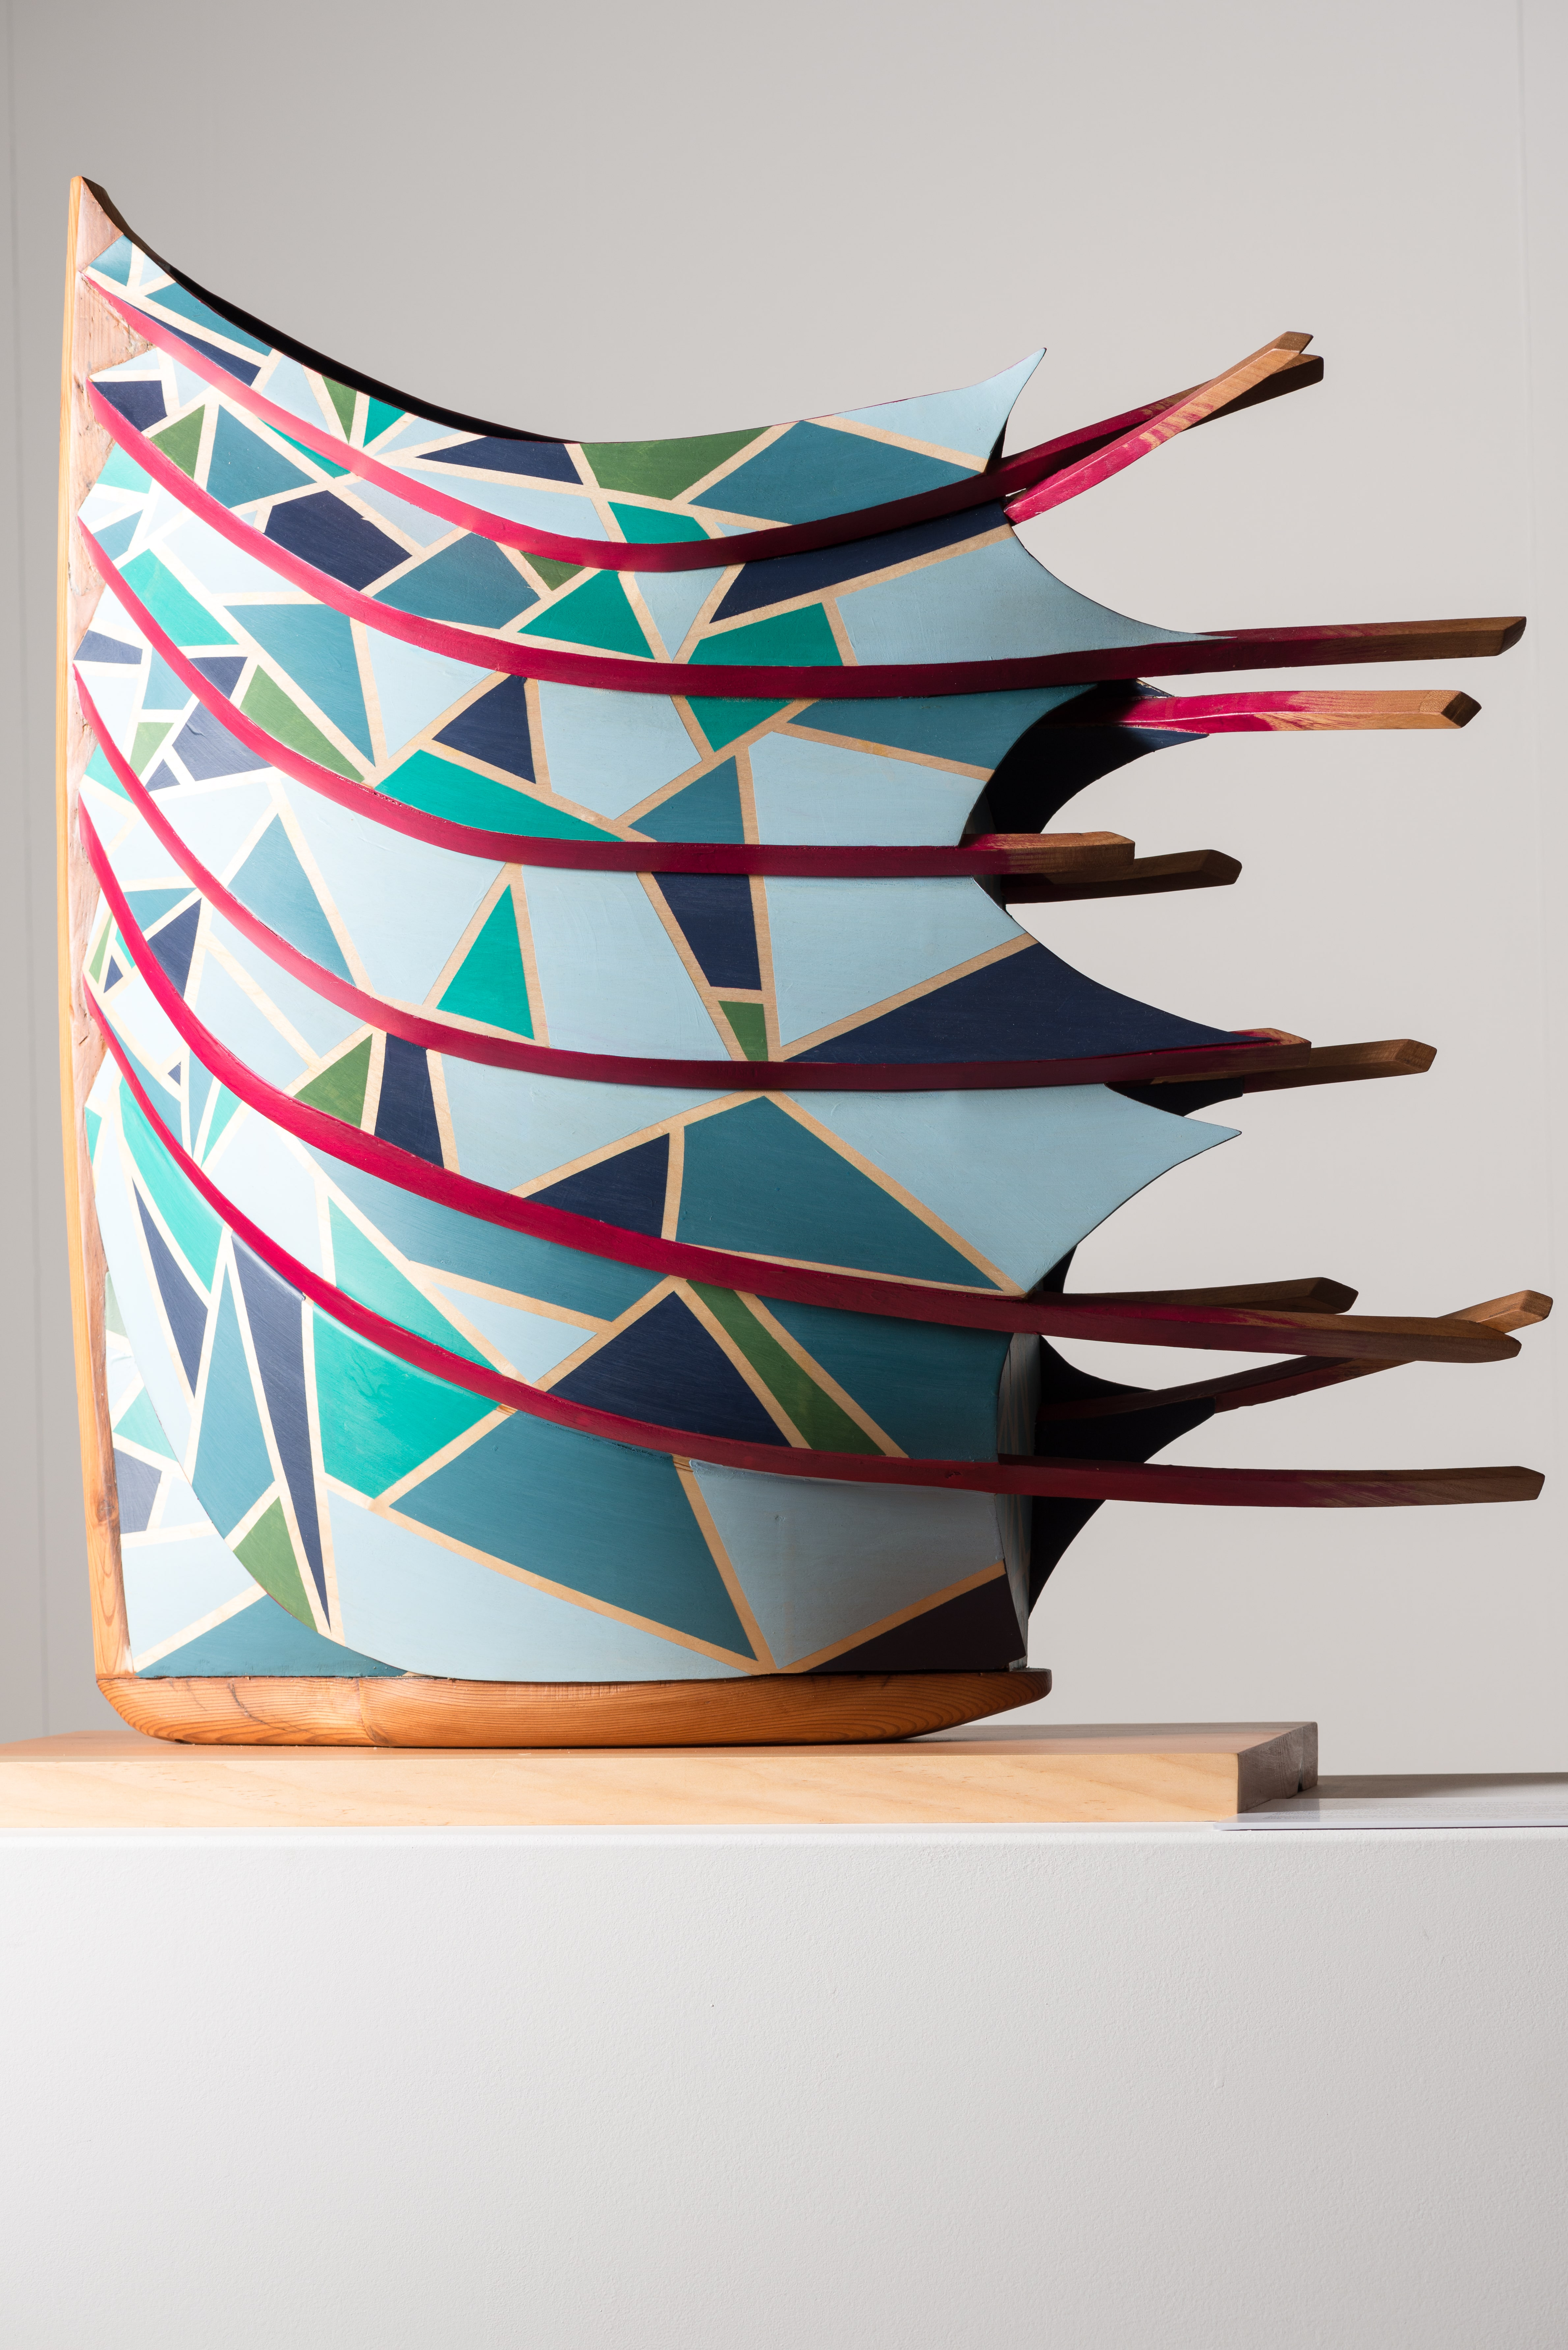 Skeleton: Sculpture inspired by boats